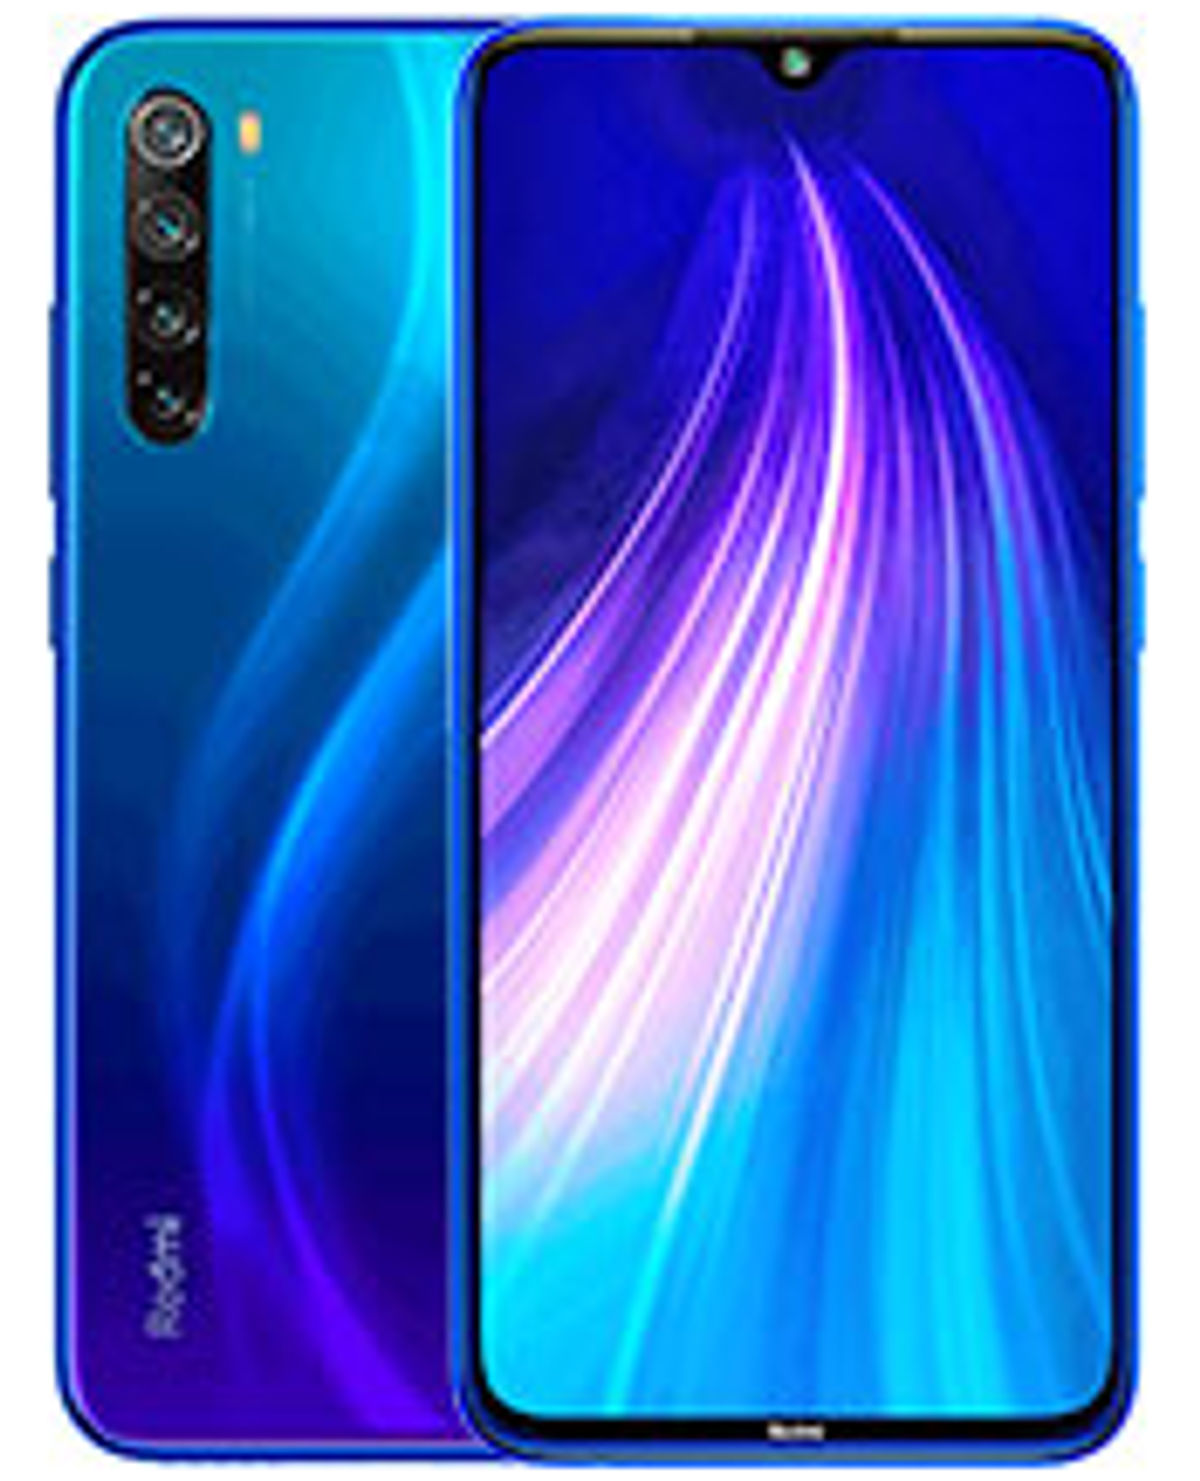 Redmi Note 8 128GB Price in India, Full Specs - 3rd September 2020 | Digit